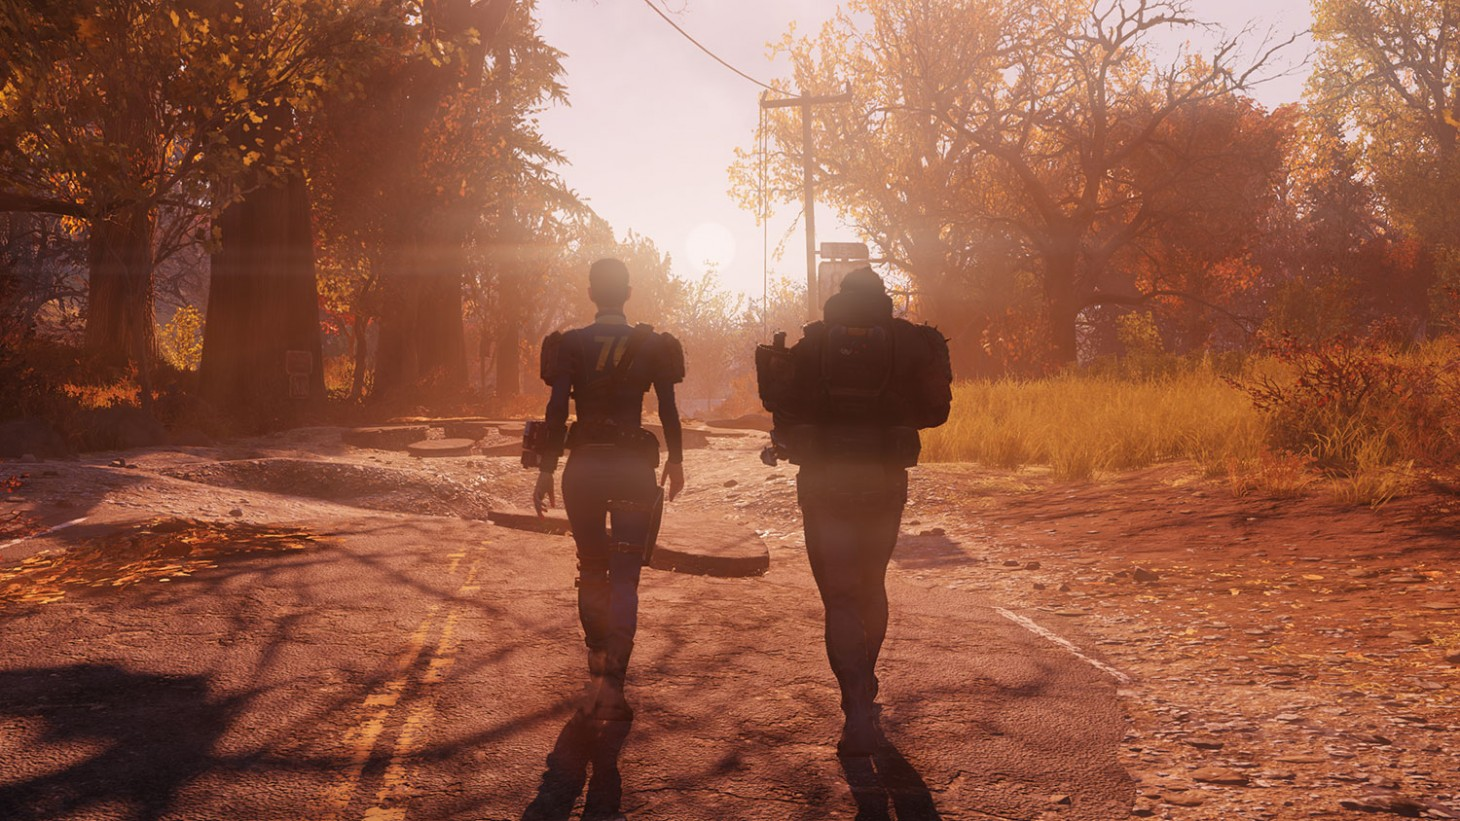 Bethesda Warns Of Fallout 76 Glitches, Like Deleting Entire